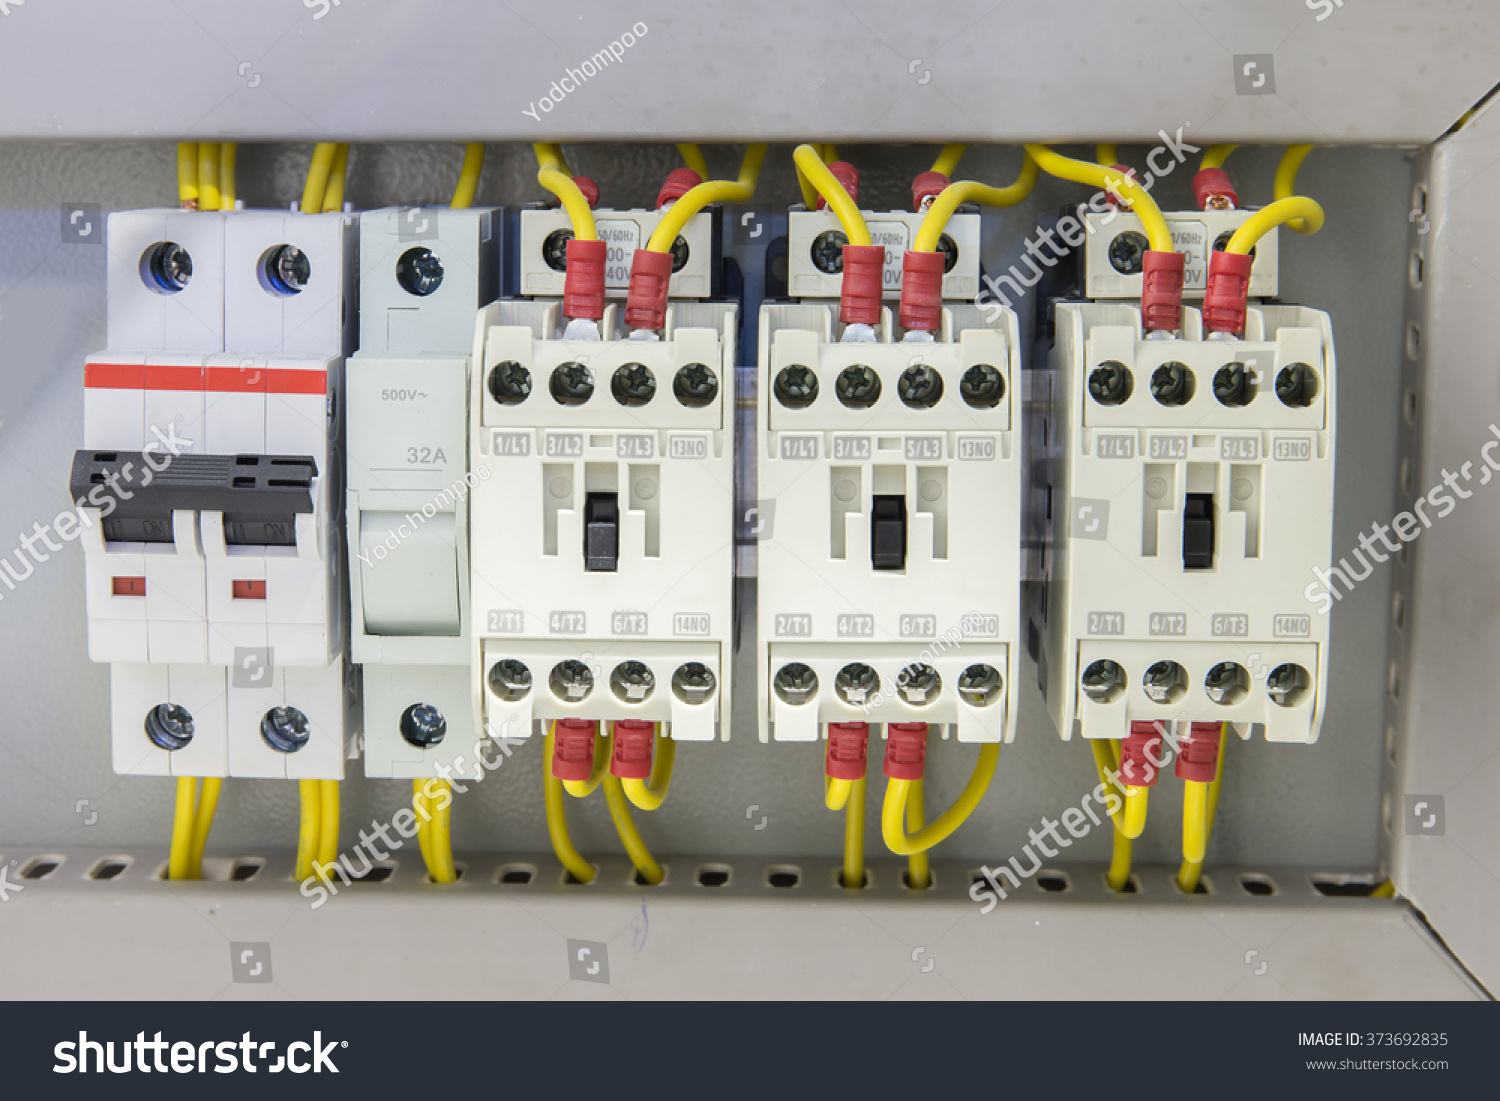 Industrial Electrical Panel Electronic Devices Relay Stock Photo